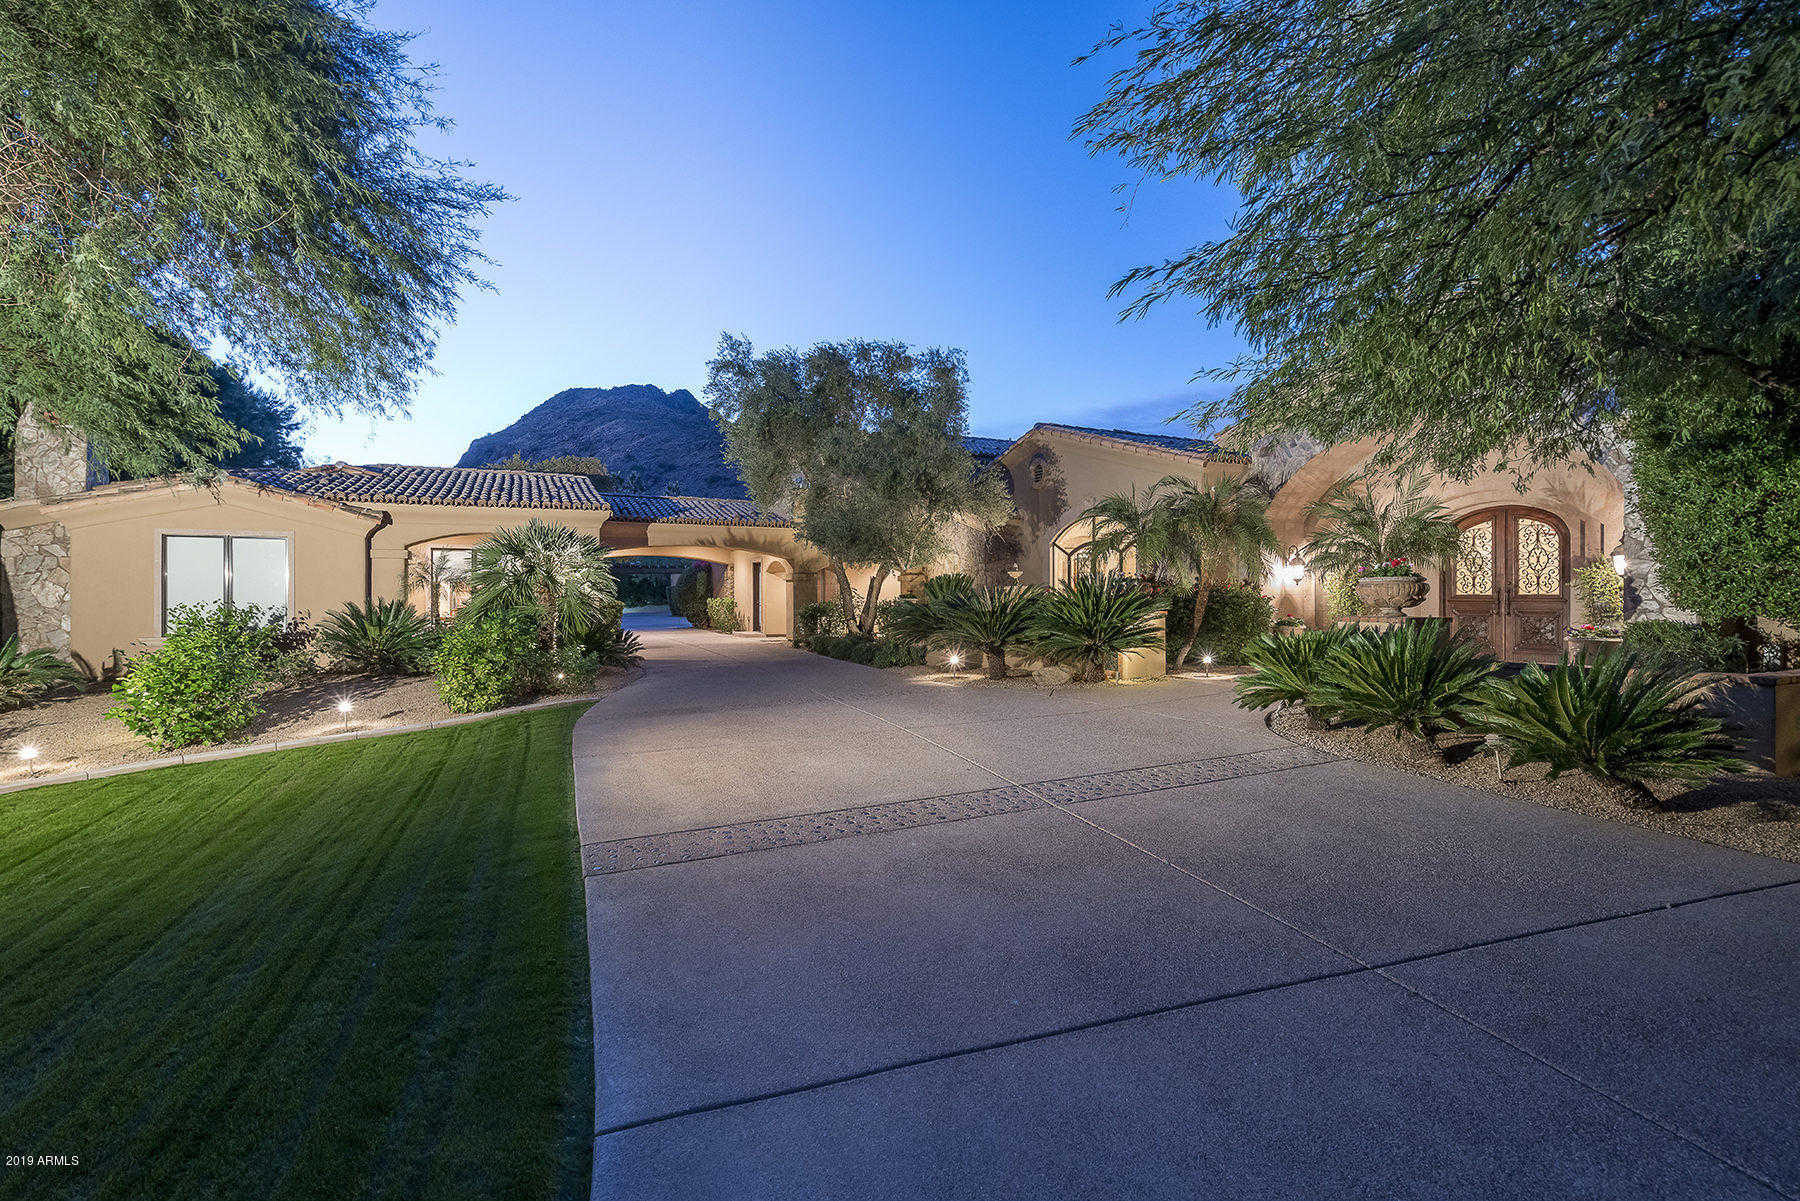 $6,000,000 - 7Br/10Ba - Home for Sale in Camelback Lands, Paradise Valley